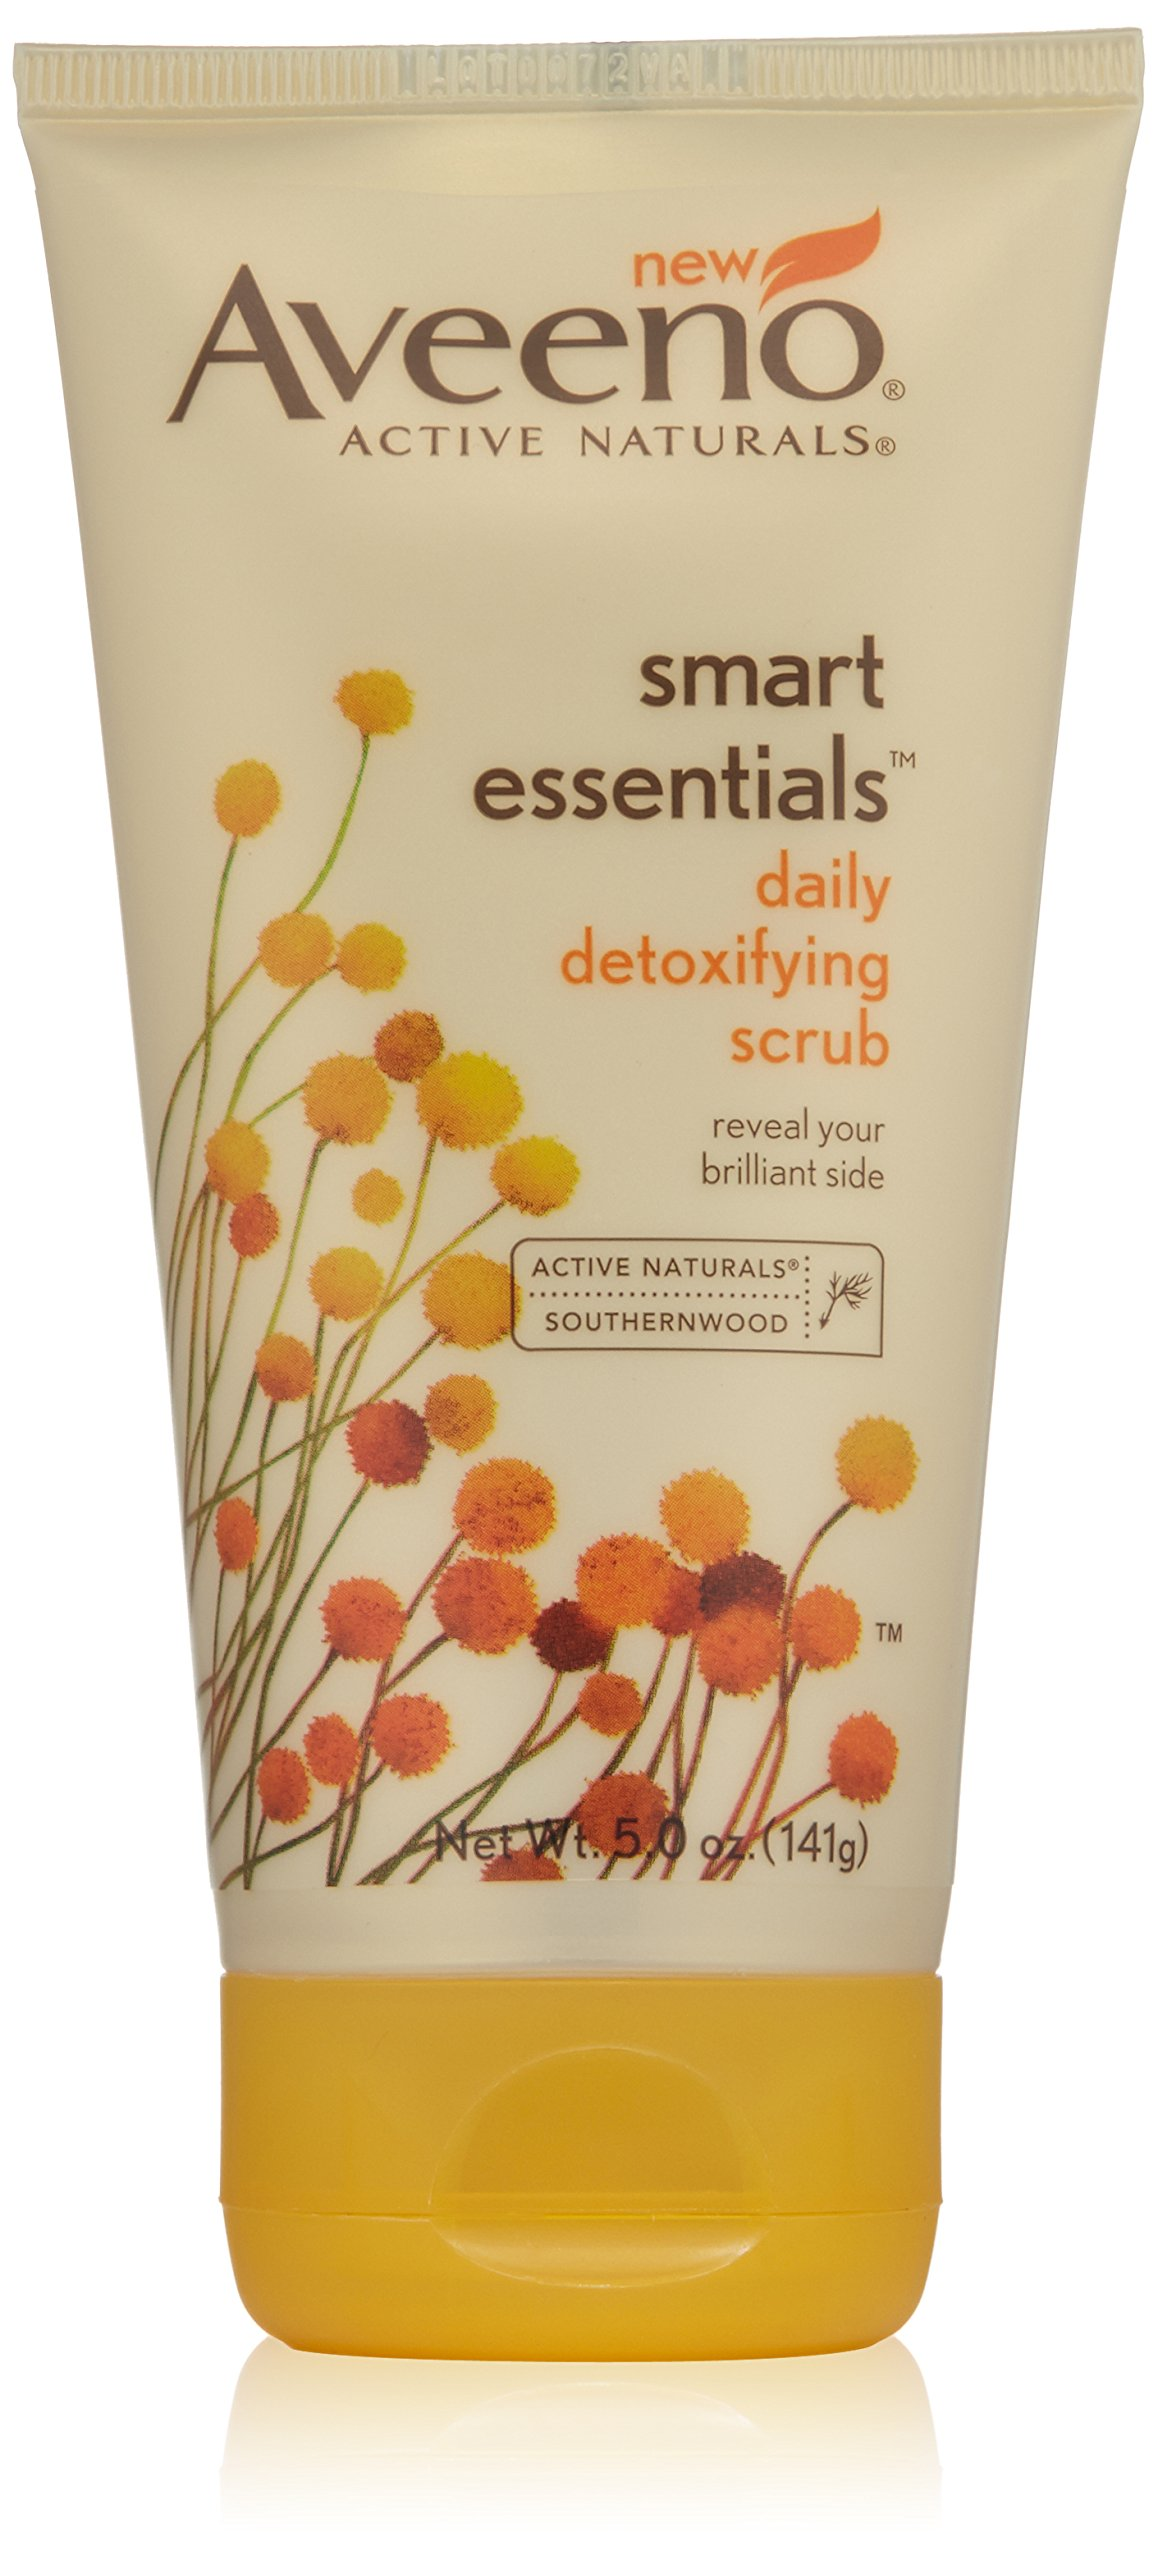 Aveeno Active Naturals Smart Essentials Daily Detoxifying Scrub, 5.0 Ounce (2 Pack)